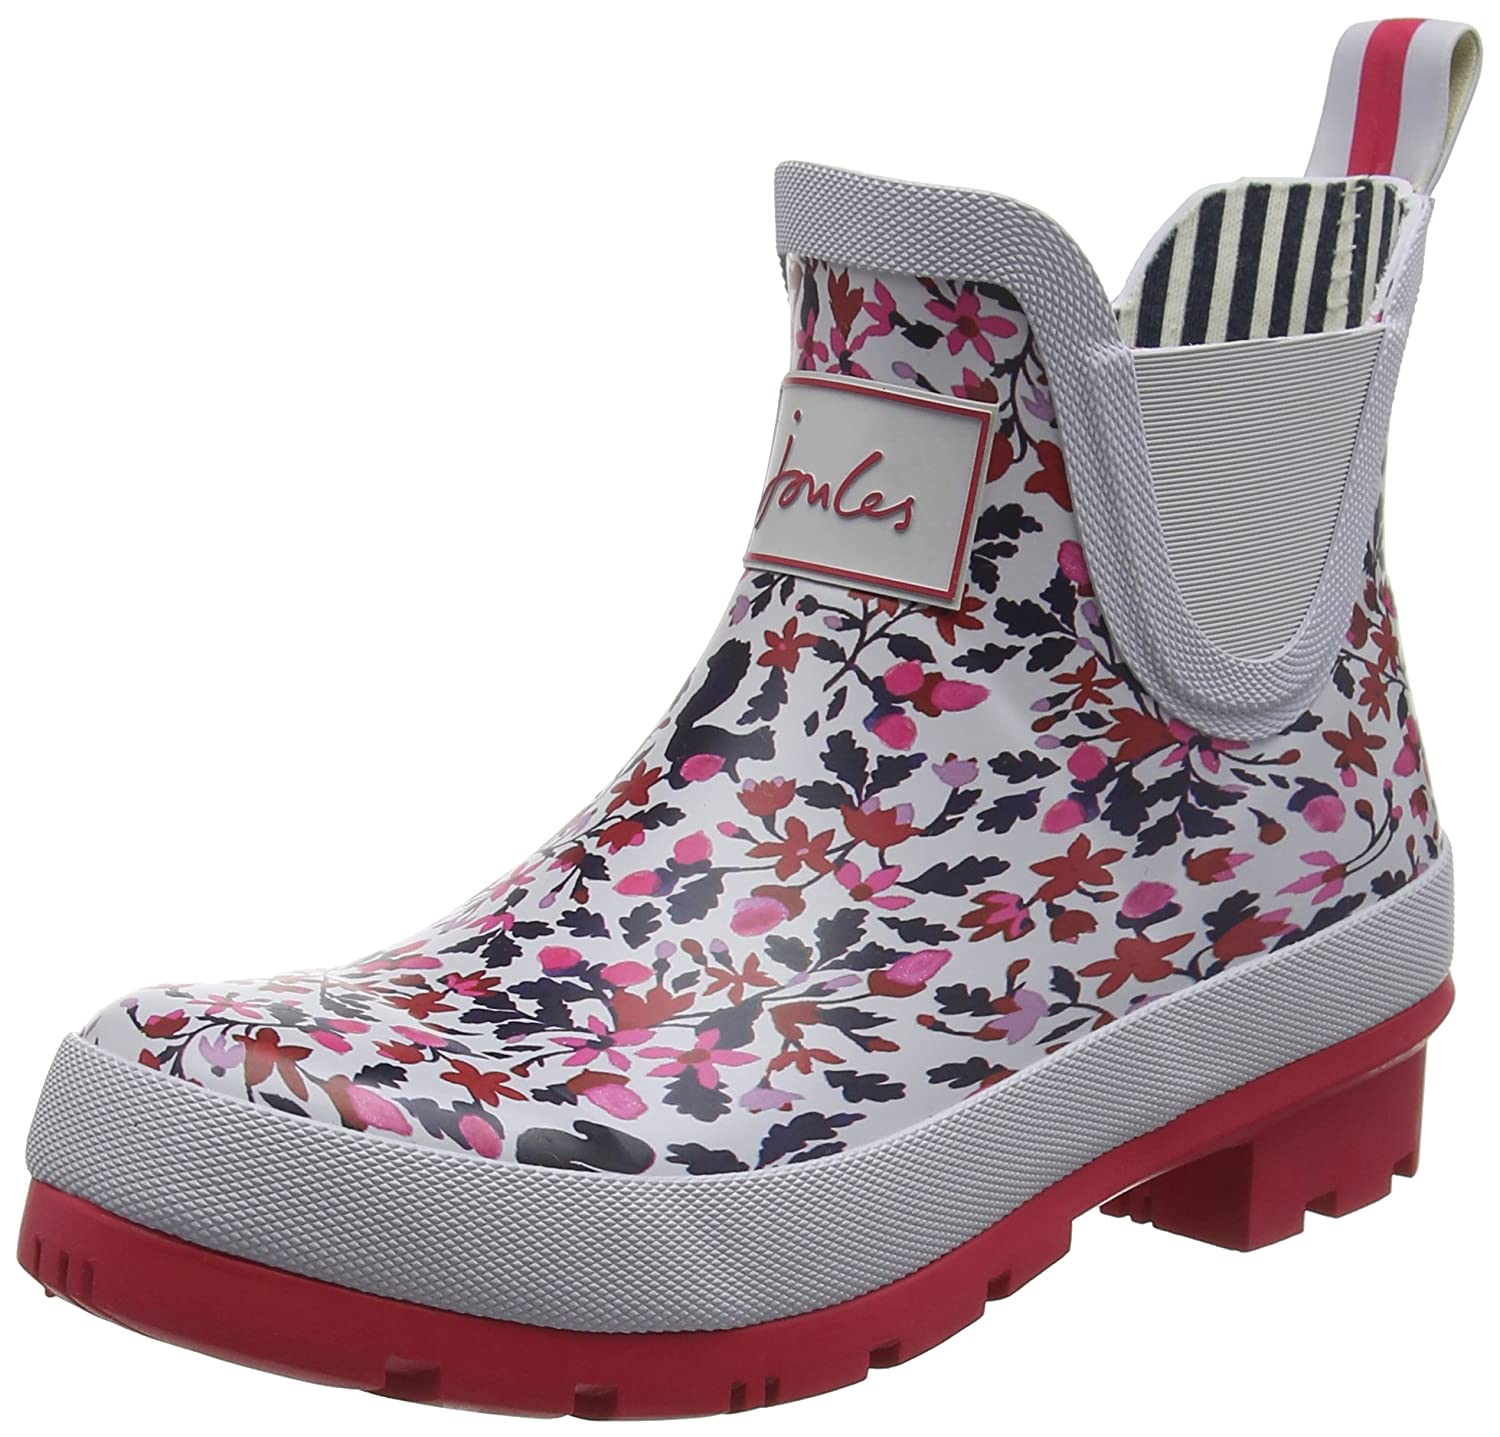 Joules Women's Wellibob Ankle-High Rubber Rain Boot B07KSH4C66 Silver Woodland Squirrel Ditsy Women's 6